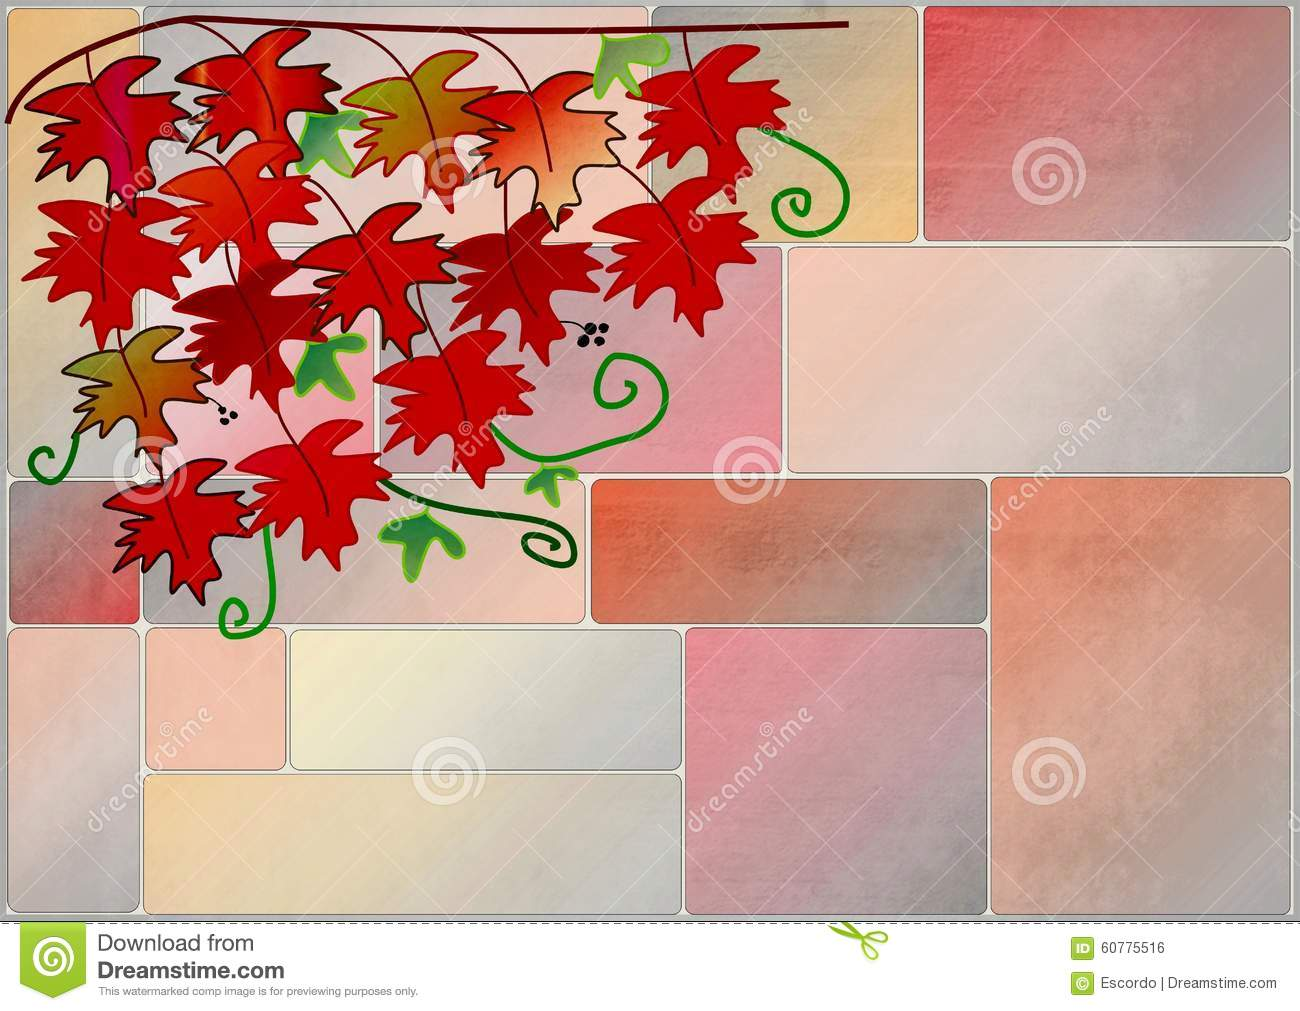 Wall Art Red Leaves : Clipart with red vine leaves on a wall stock illustration